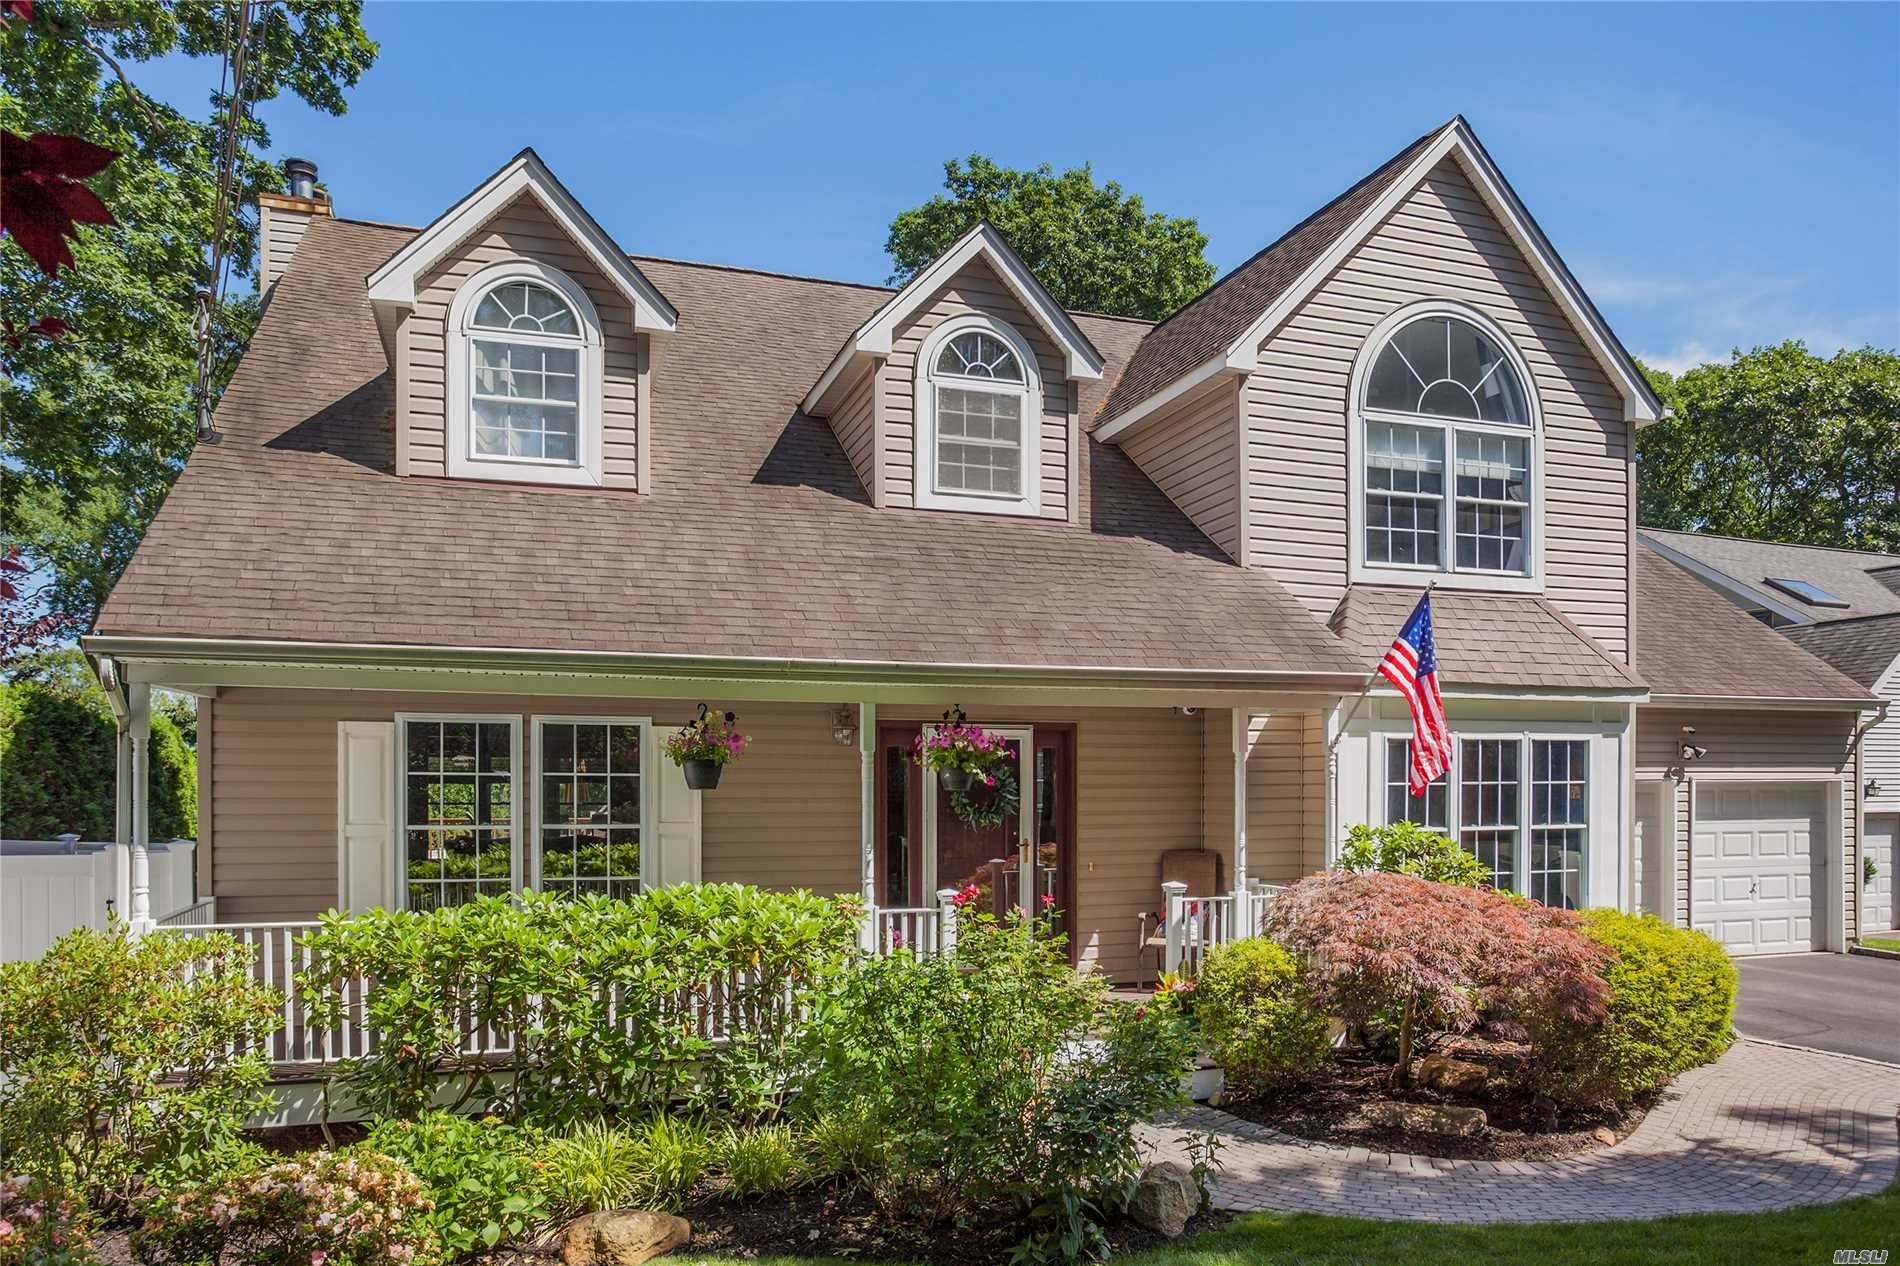 Spacious 1998 Post-Modern Colonial. Pretty Front Porch, Two Story Entry, Open Floor Plan, Hardwood Flrs, Granite Counter-Tops, Ss Appl, Eat-In-Kitchen, Family Room W/Fpl, Laundry/Mud Room. Mstr Suite W/ Lge Walk-In Closet, Cac, Cvac, Alarm System, Ing Sprinklers, Skylights, Attic,  Perfect Yard For Entertaining Bi-Level Deck.Fun Basketball Court W/ New Turf. Award Winning Harborfields Sd. Minutes To Lirr, . Enjoy Boating, Fishing, Kayaking At Near By Beaches.Home Warranty.